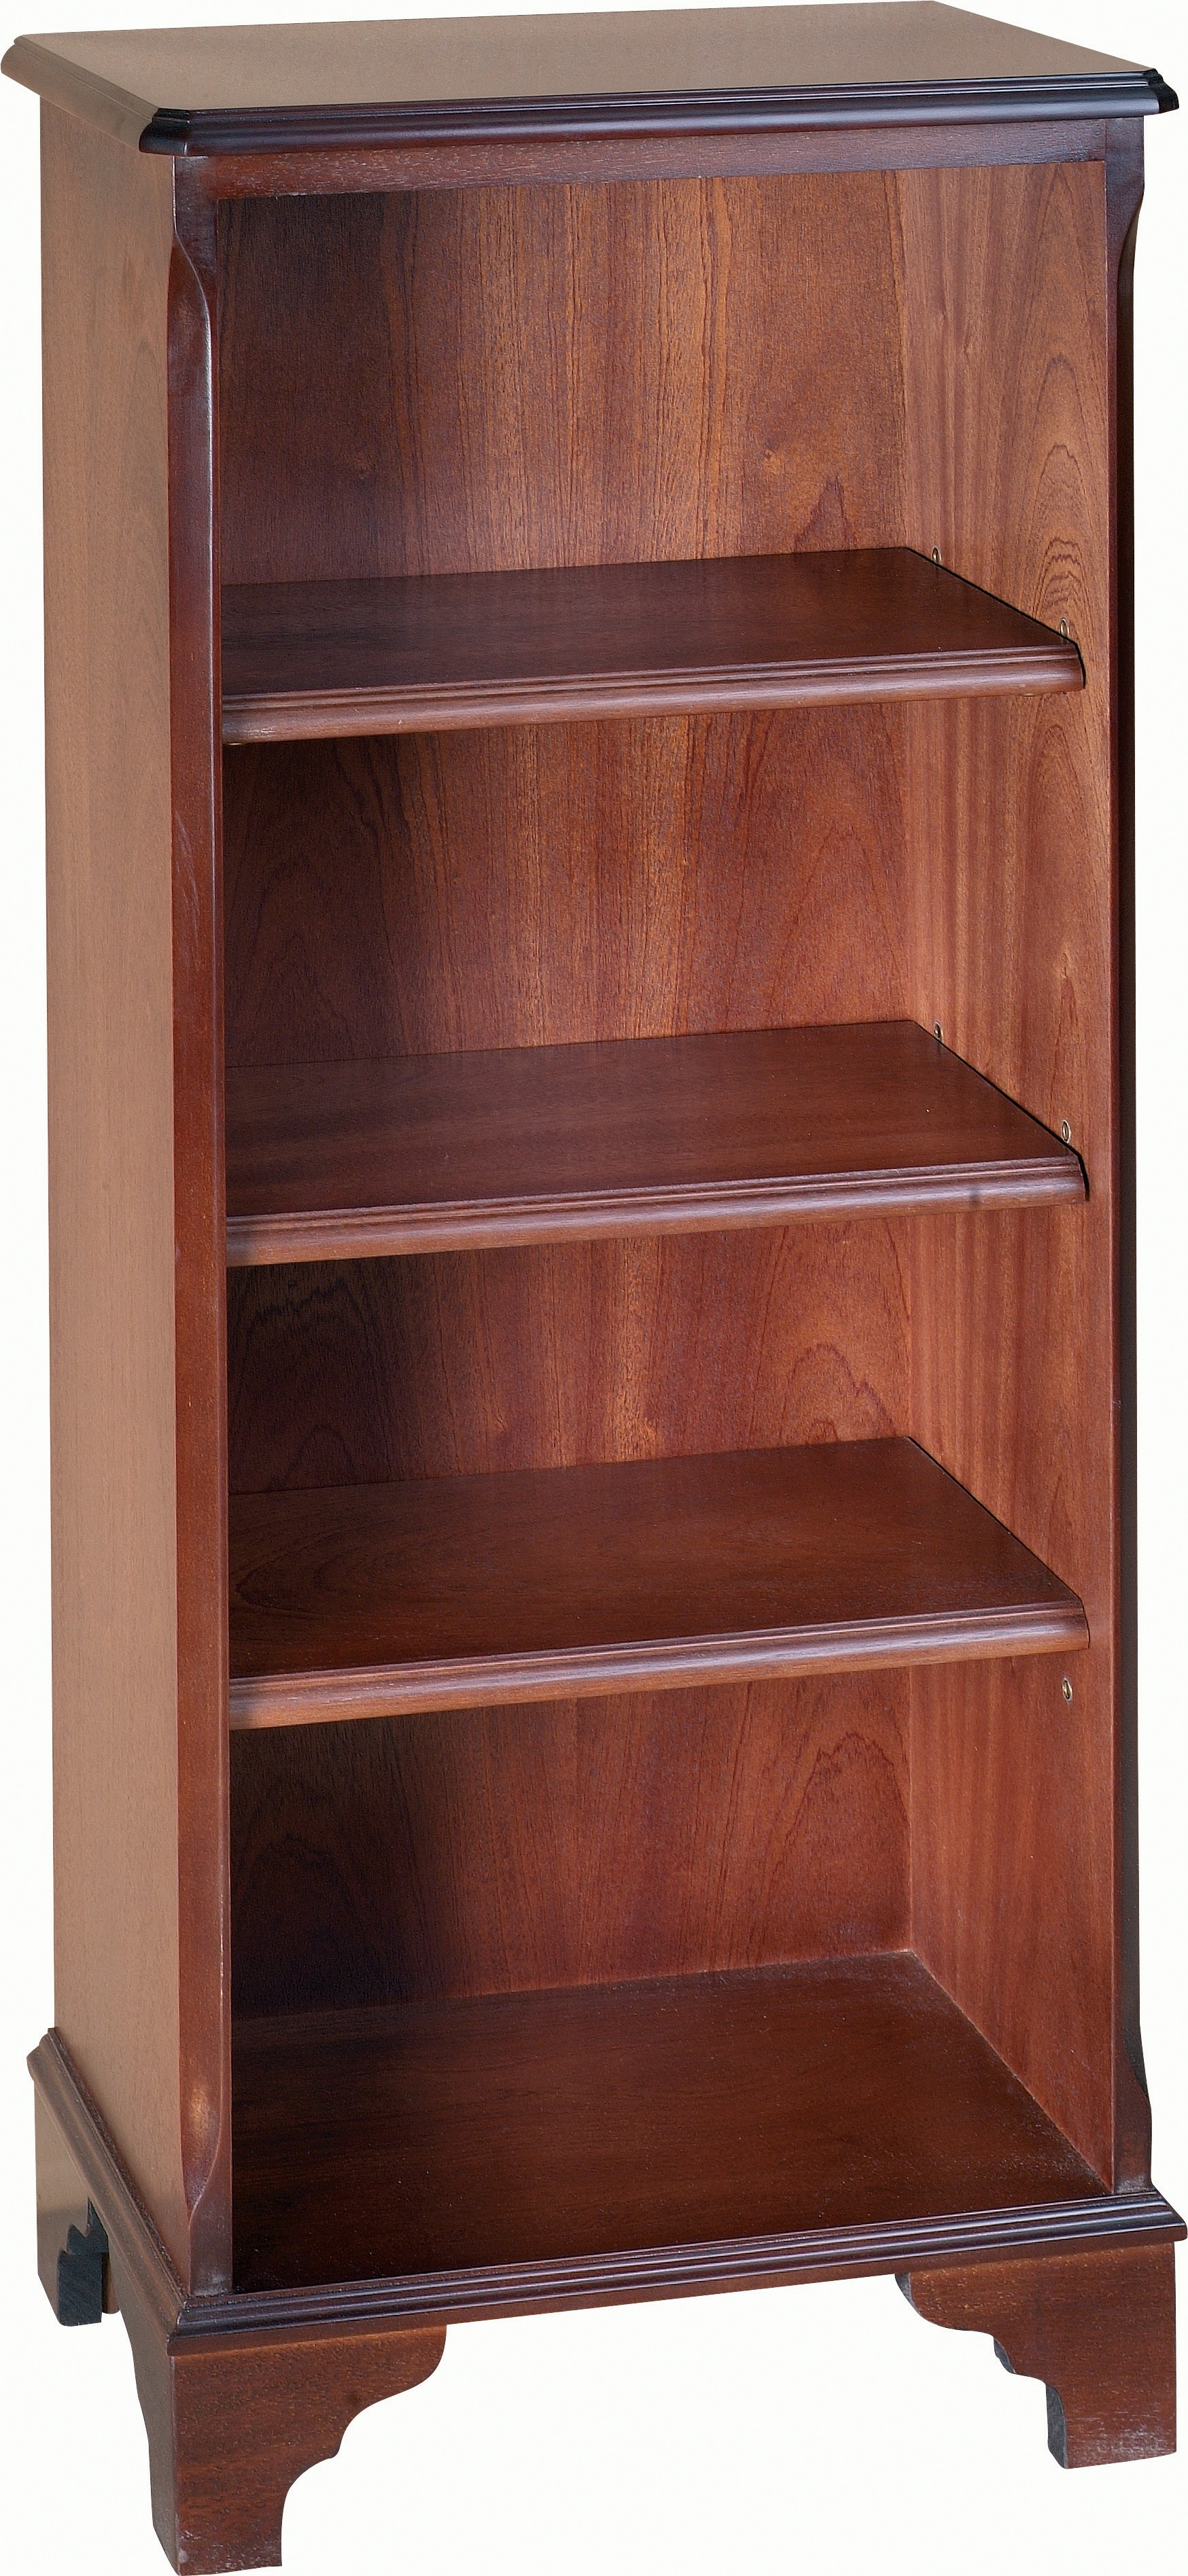 Small Open Bookcase 3 Shelves Bookcases